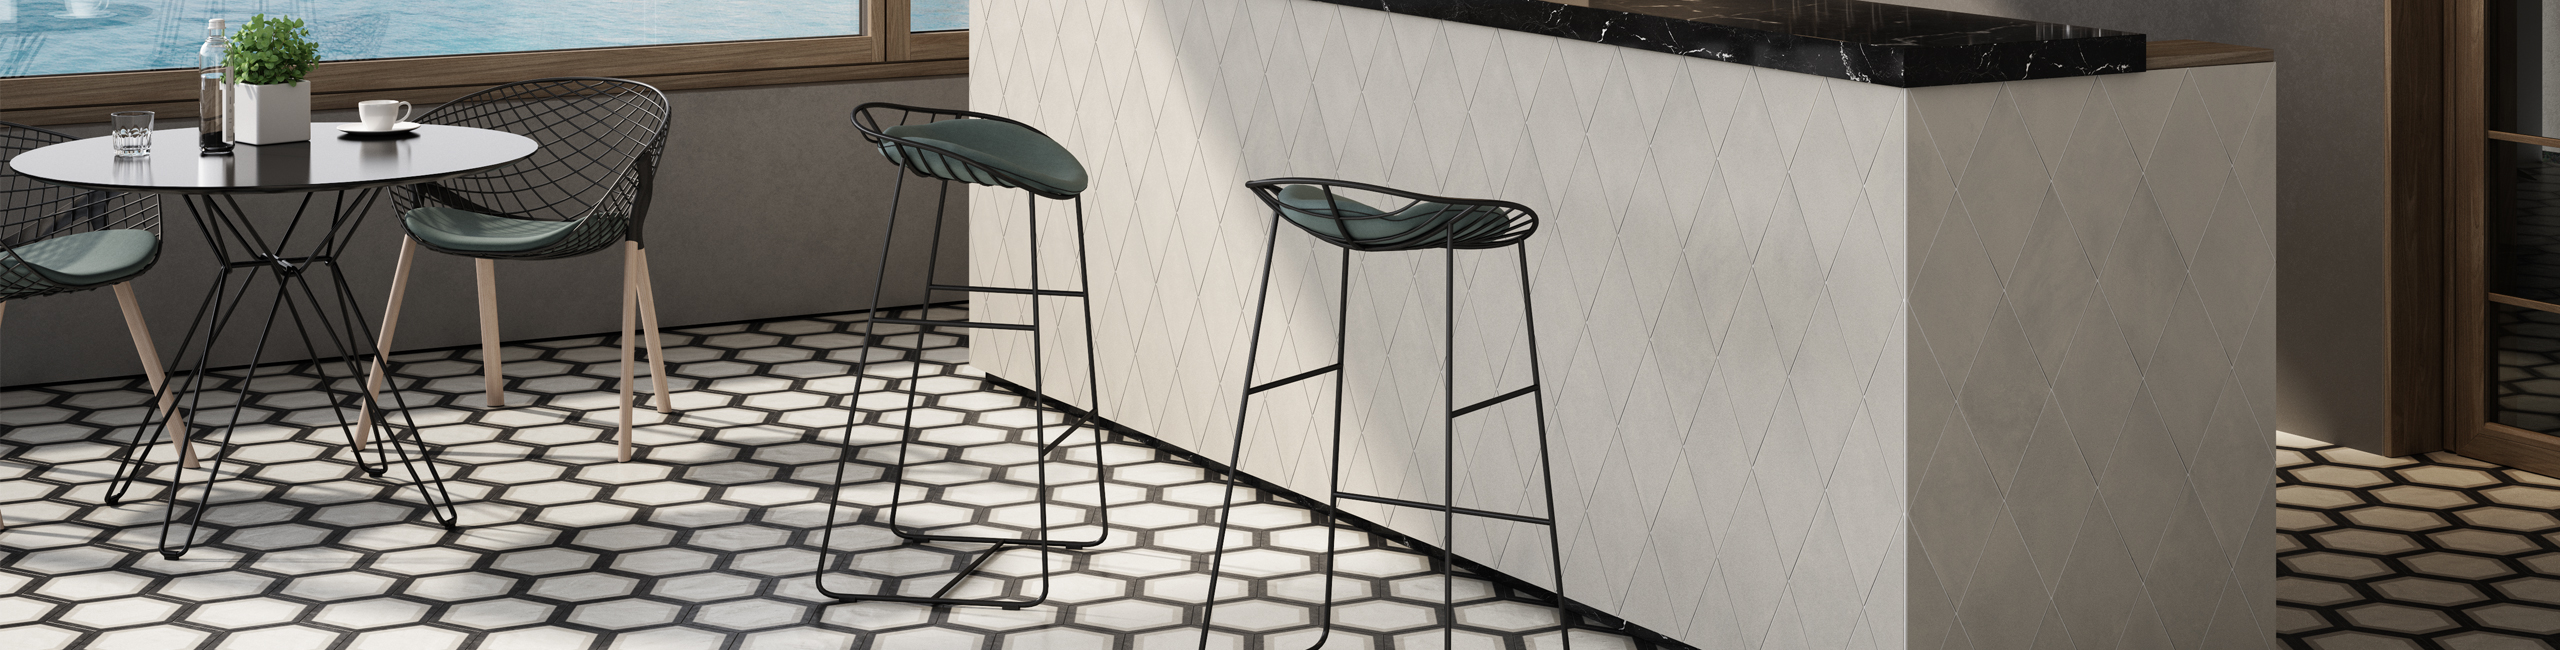 The Allure of Allora Porcelain Tile - Telaio hexagon deco